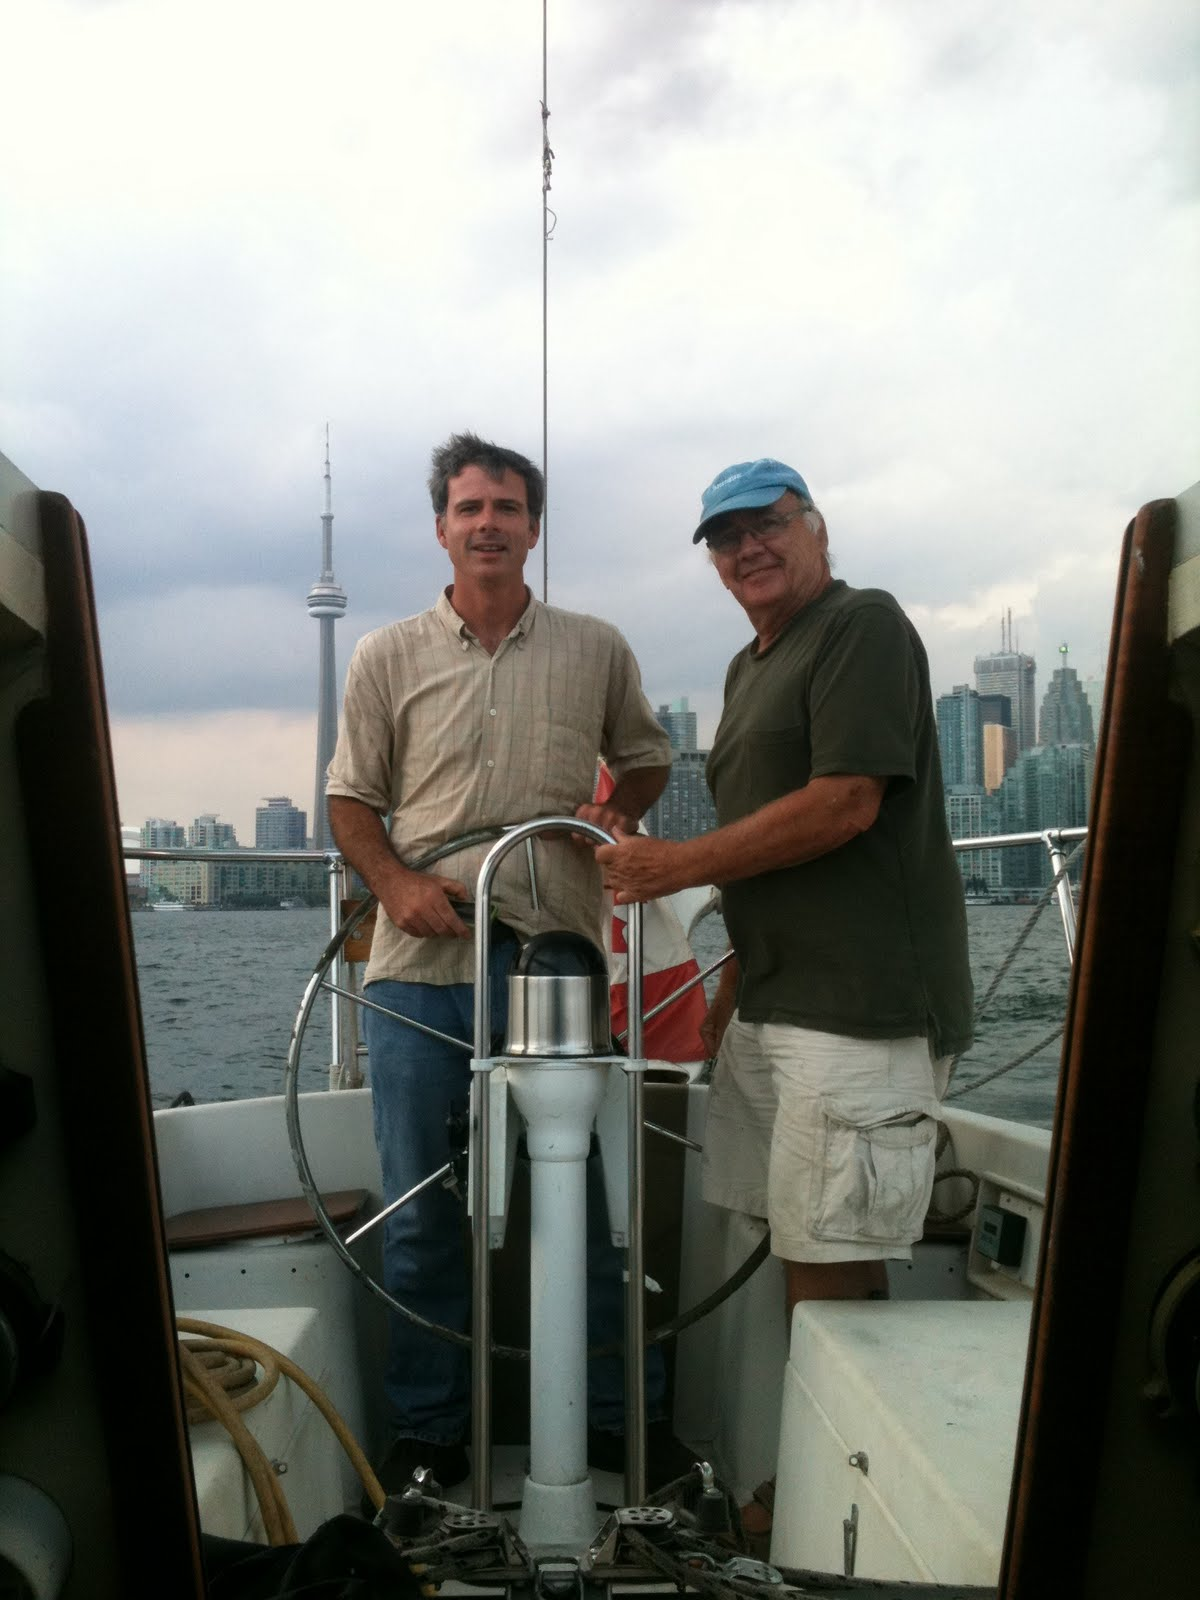 selector switch wiring this old boat lake ontario wiring harness mix sun challenge electric conversion of [ 1200 x 1600 Pixel ]